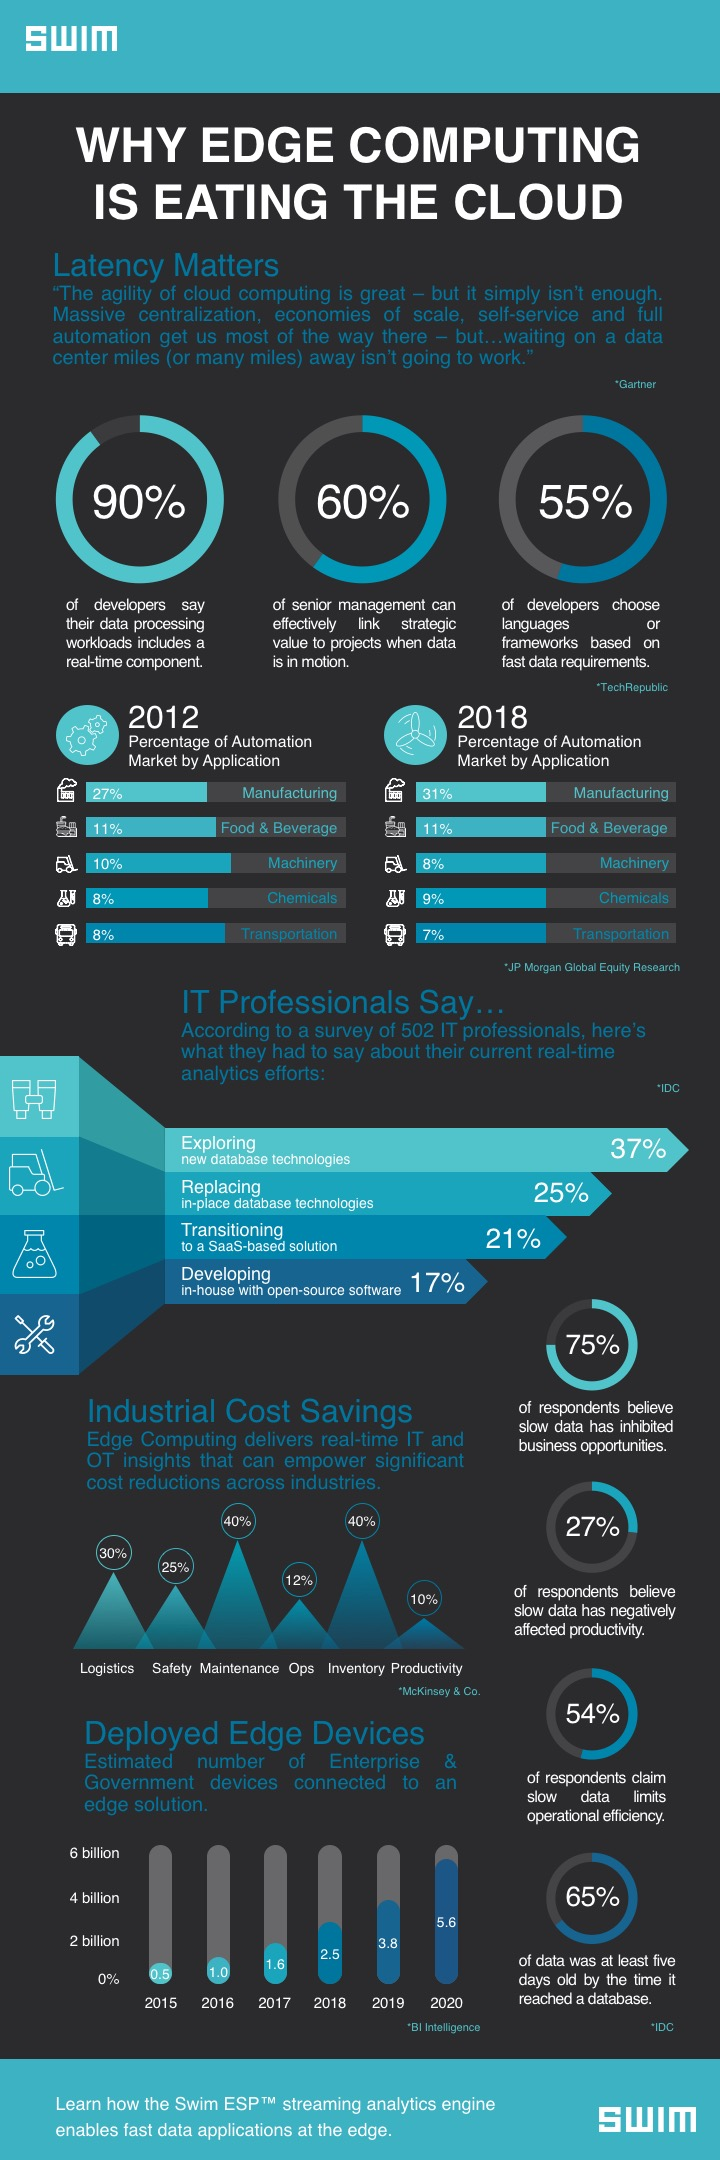 Swim_Why Edge Computing is Eating the Cloud_Infographic